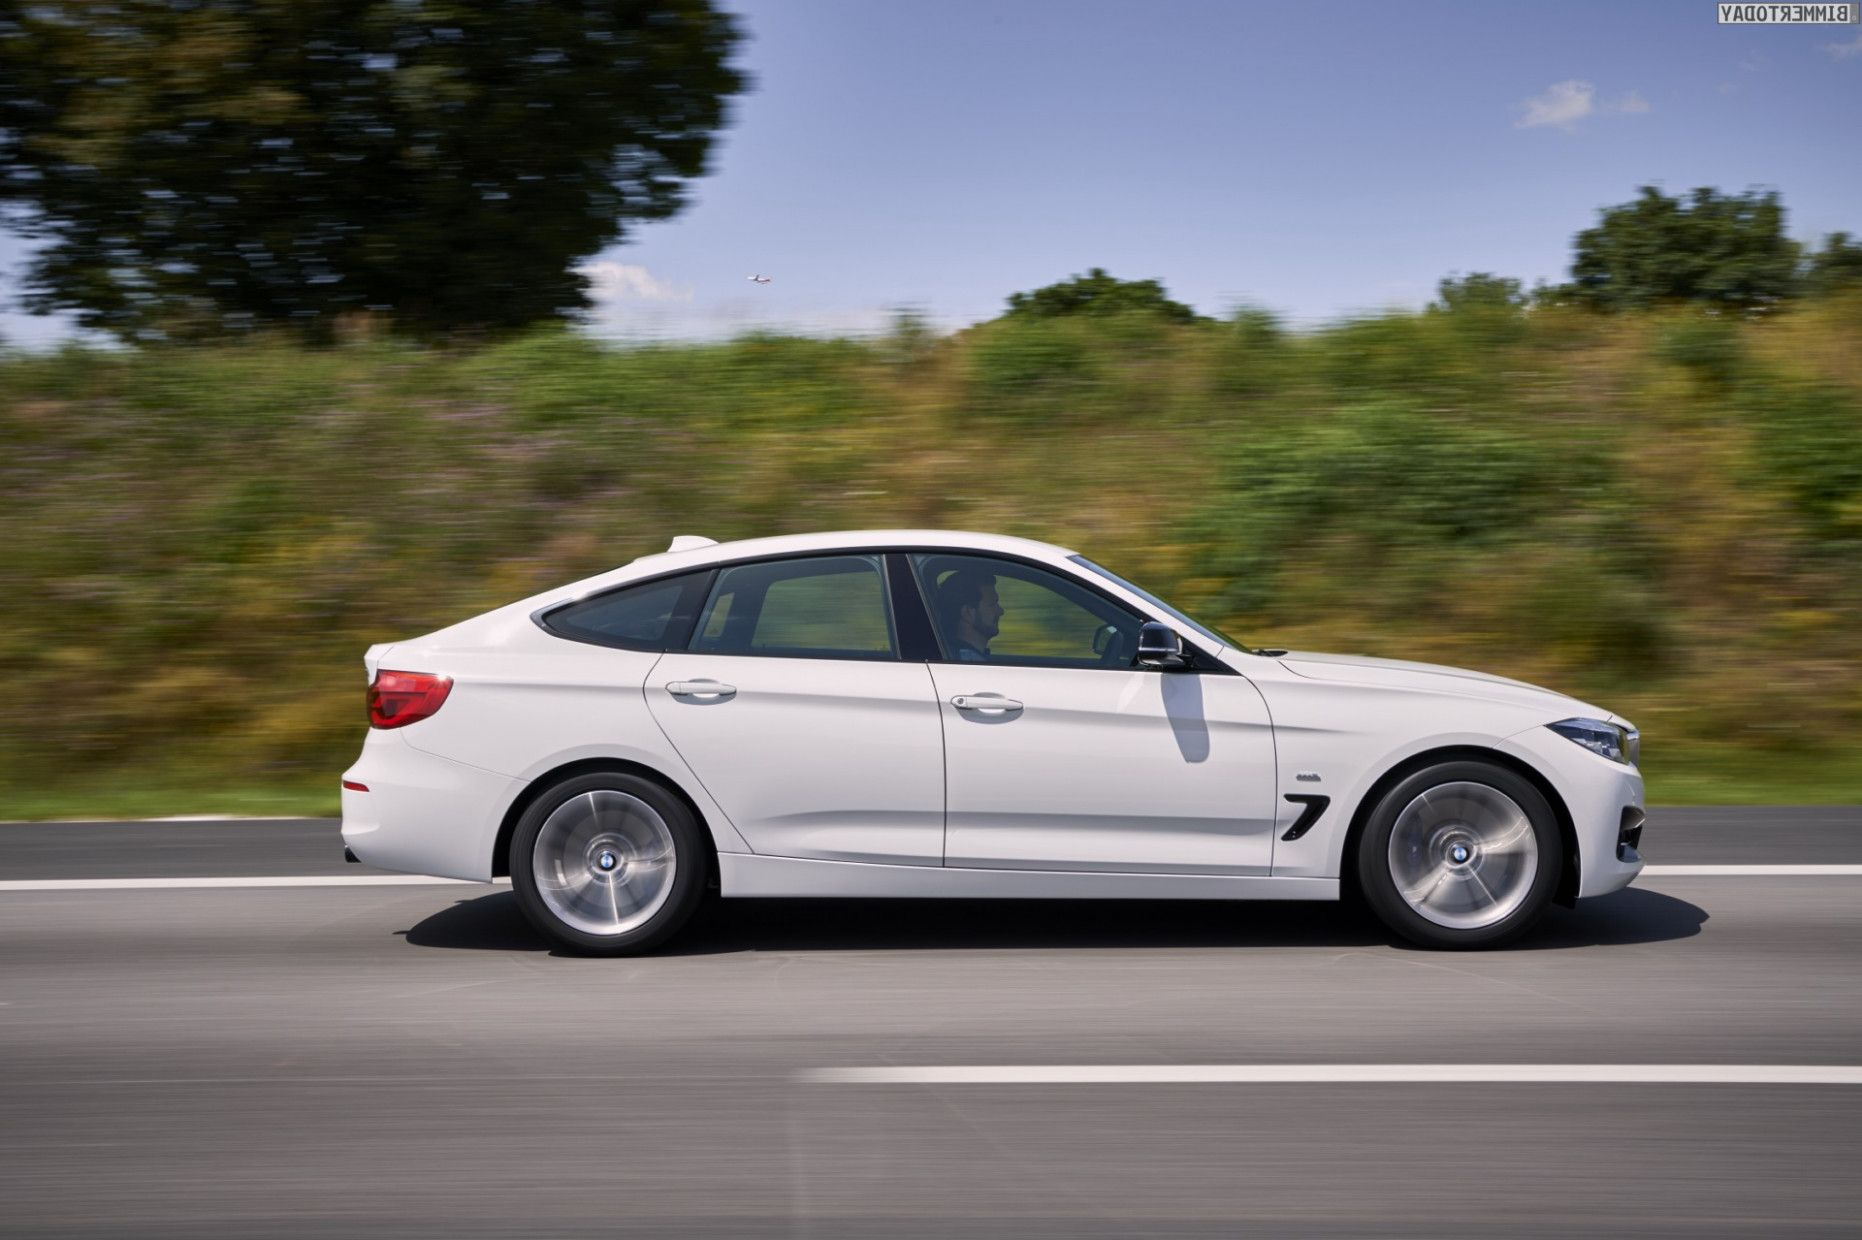 7 Reasons Why People Like Bmw Gt With Images Bmw Why People